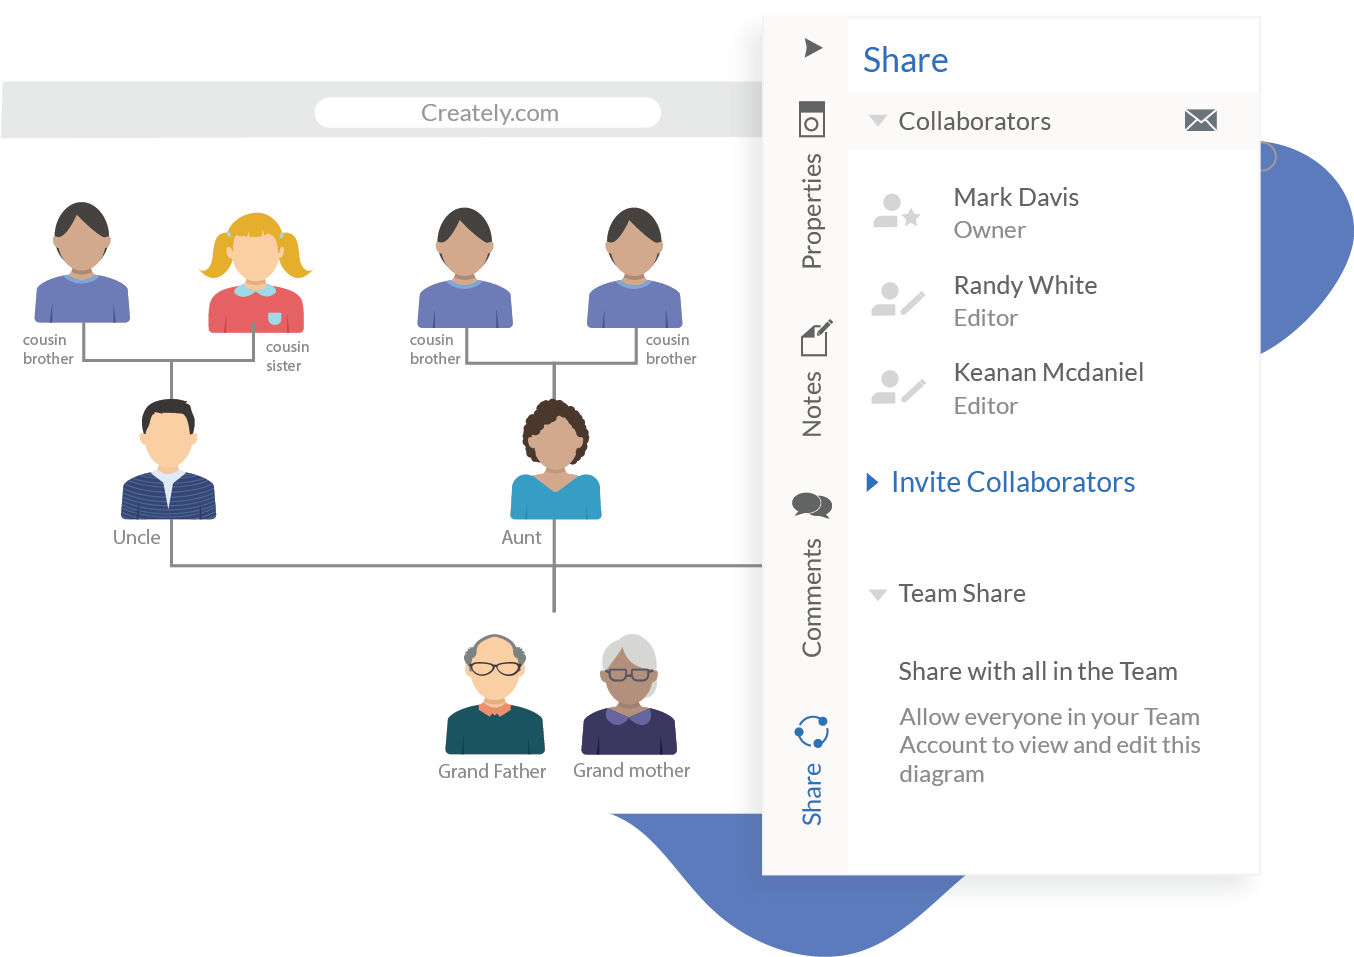 Collaborate with Your Family Members in Real-Time